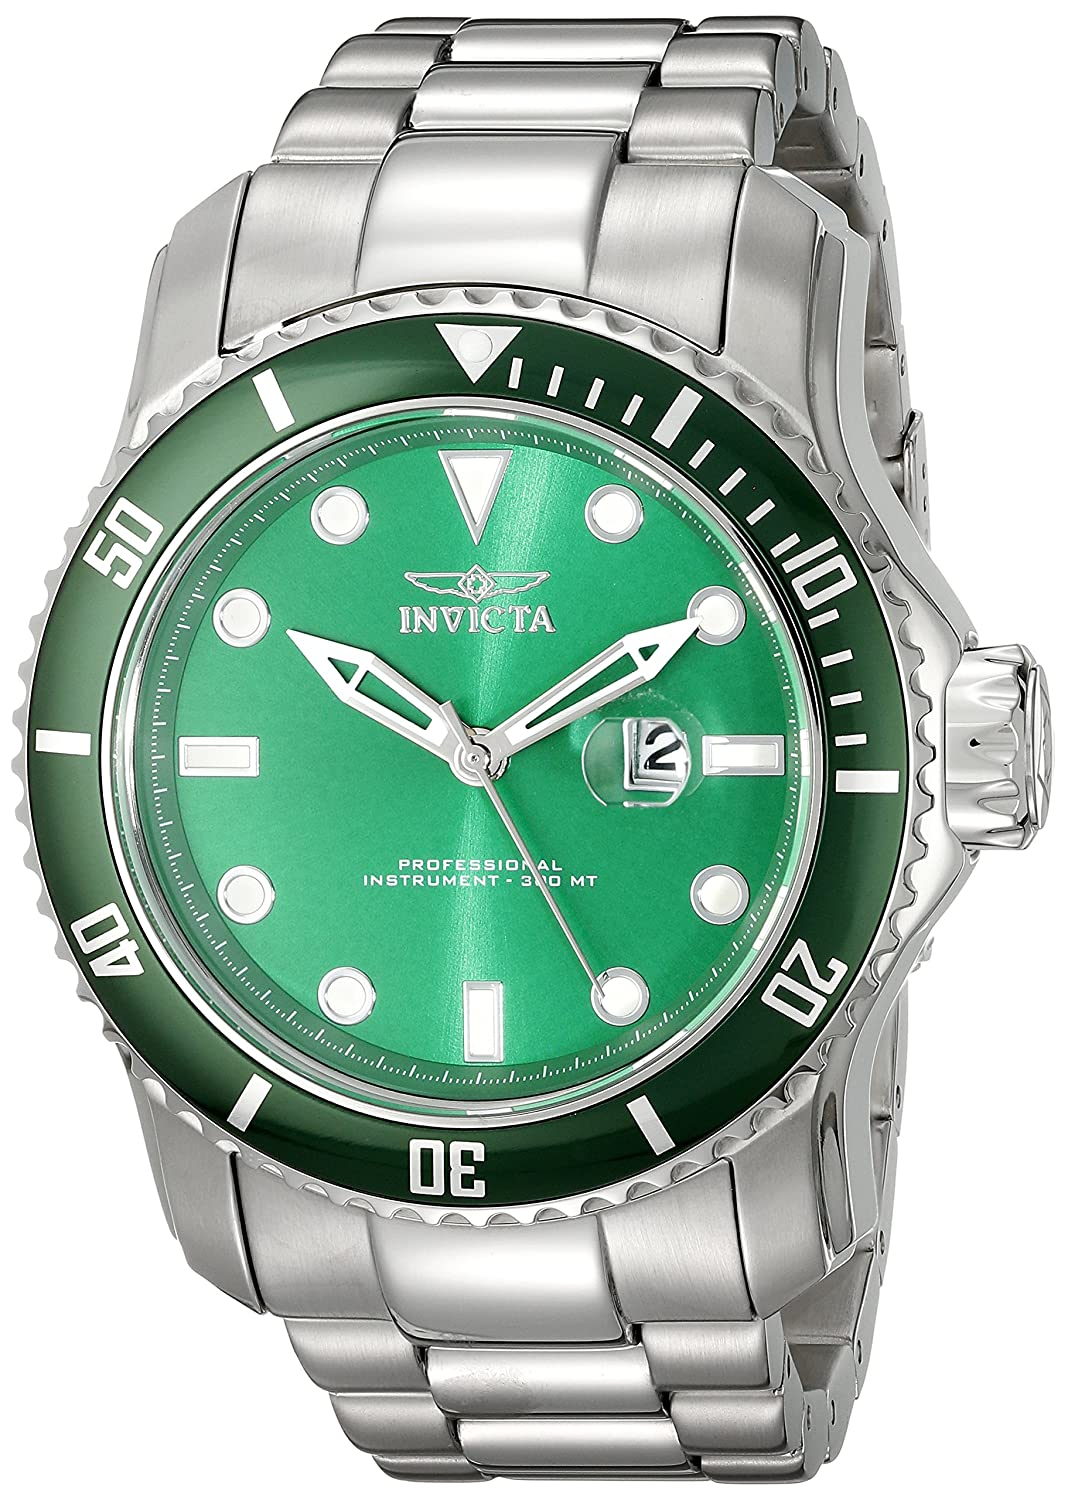 shinola through watches review timepieces of green watch face storytelling a runwell